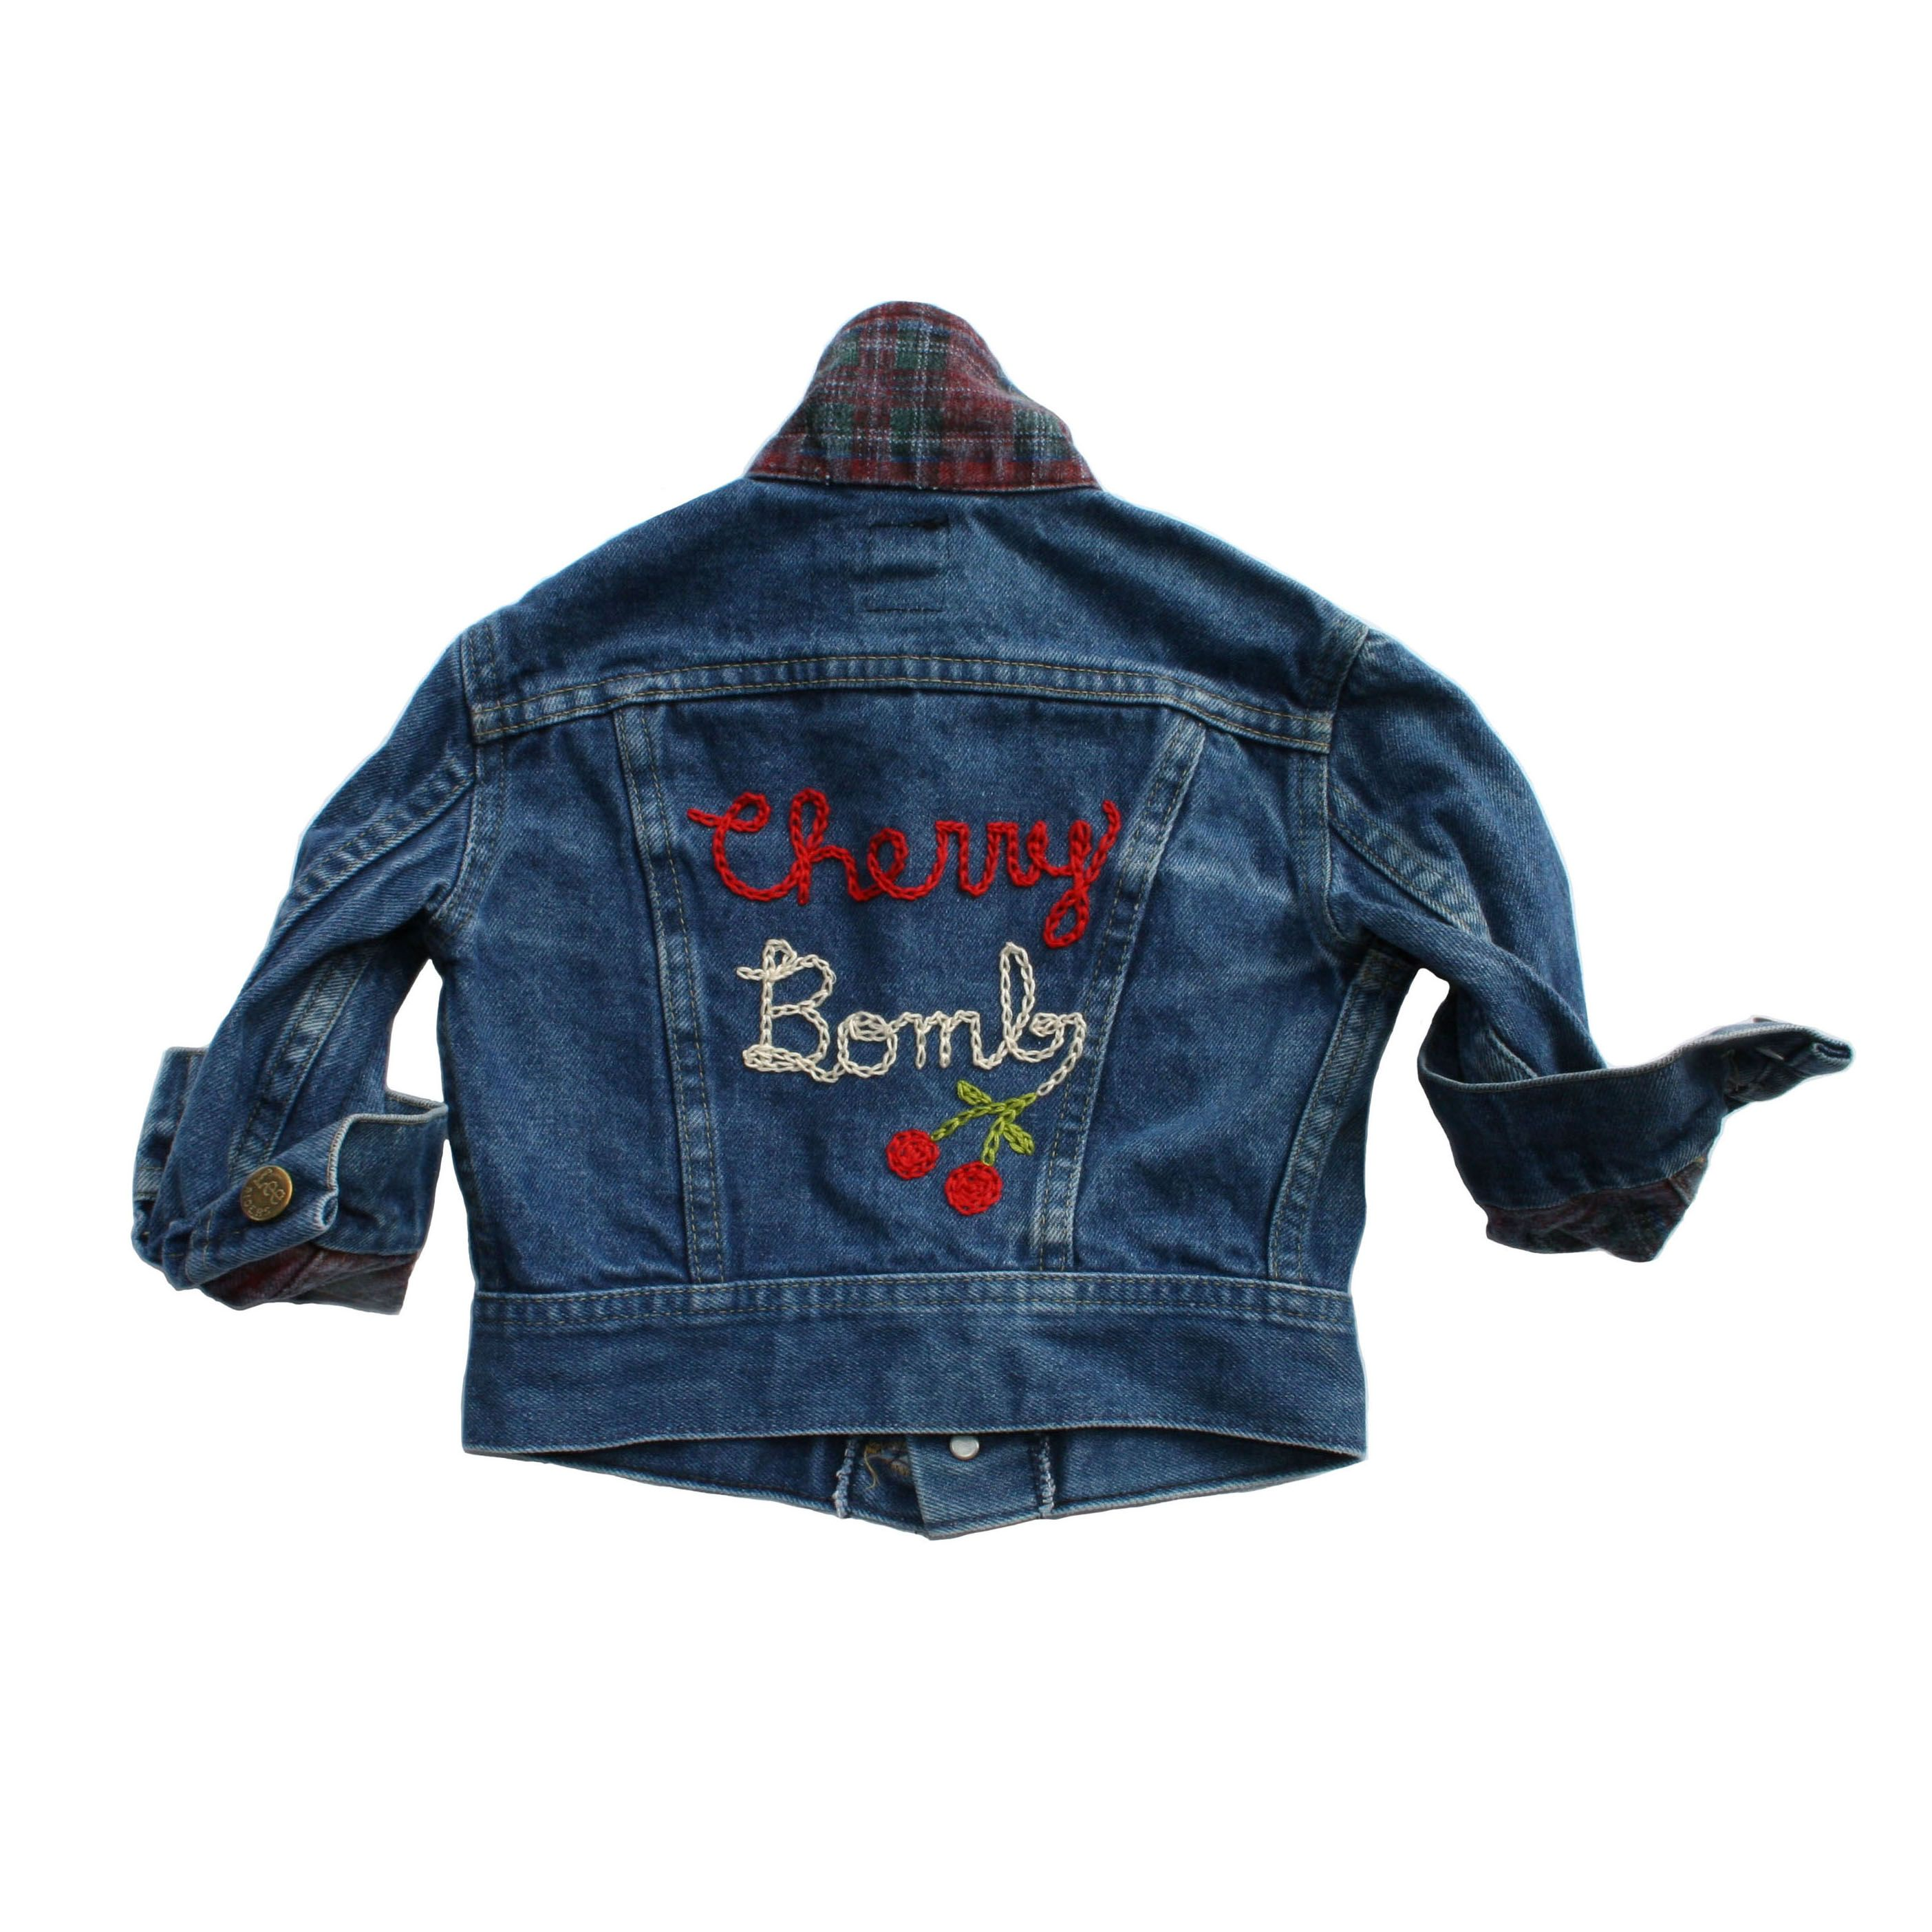 cb7368d7 SiD NYC : vintage Levis denim jacket with CHERRY BOMB embroidery on back.  Contrast red plaid inside denim jacket #sidnyc #kidsfashion #kidsclothing # vintage ...